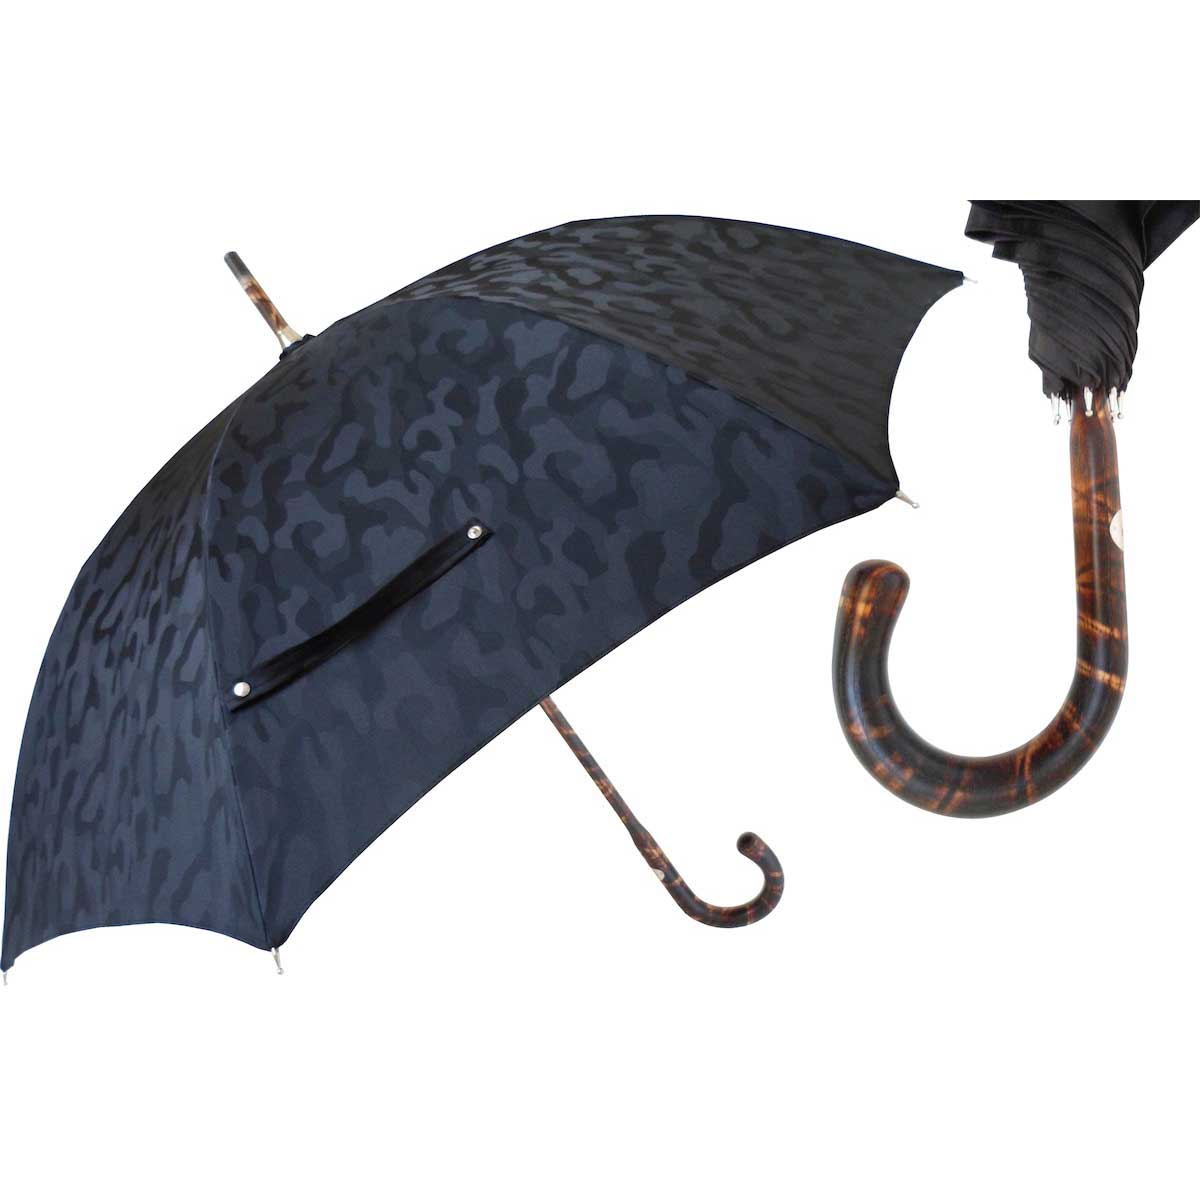 Pasotti Ombrelli Black Camouflage Bespoke Men's Umbrella